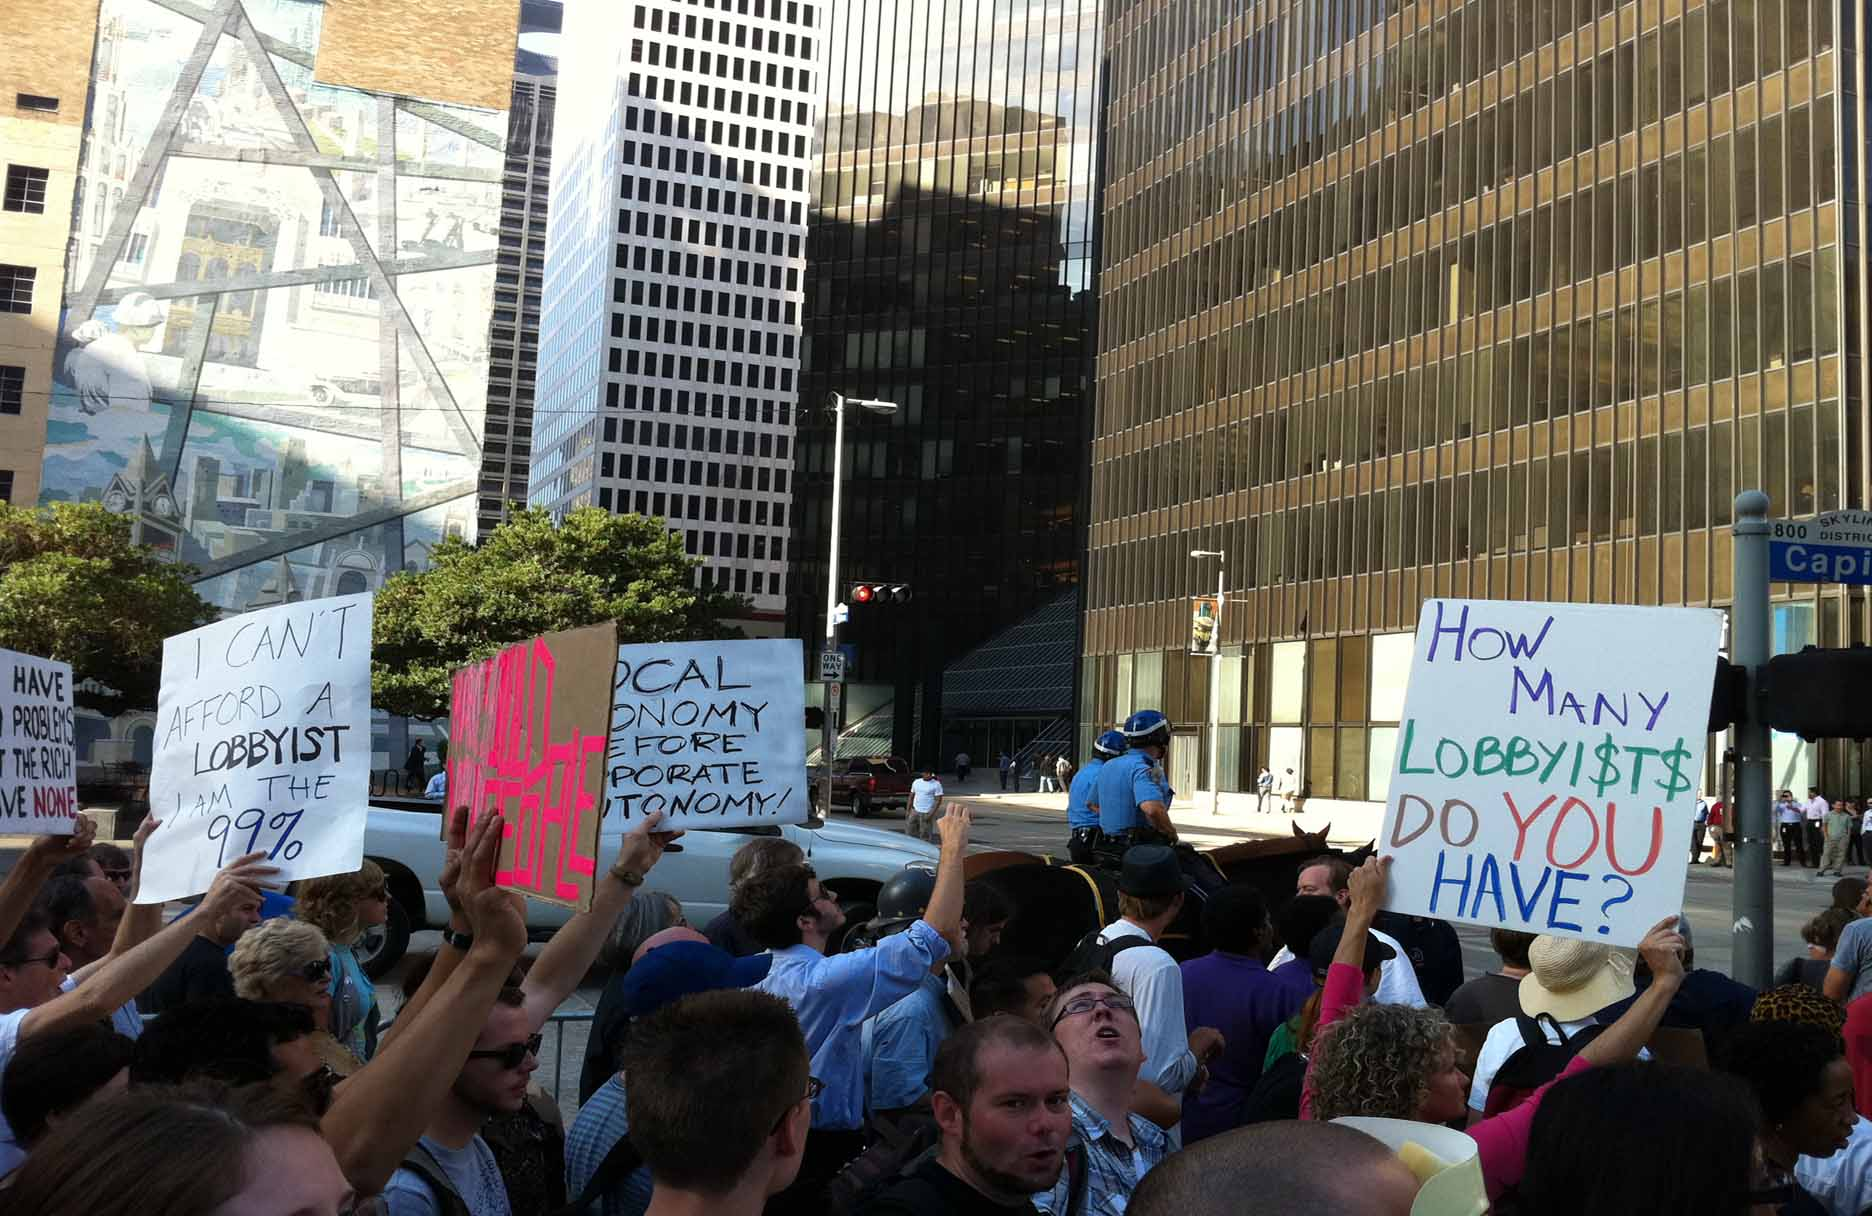 Peaceful Occupy Wall Street Protests spread to Houston. Photo: George Lupercio